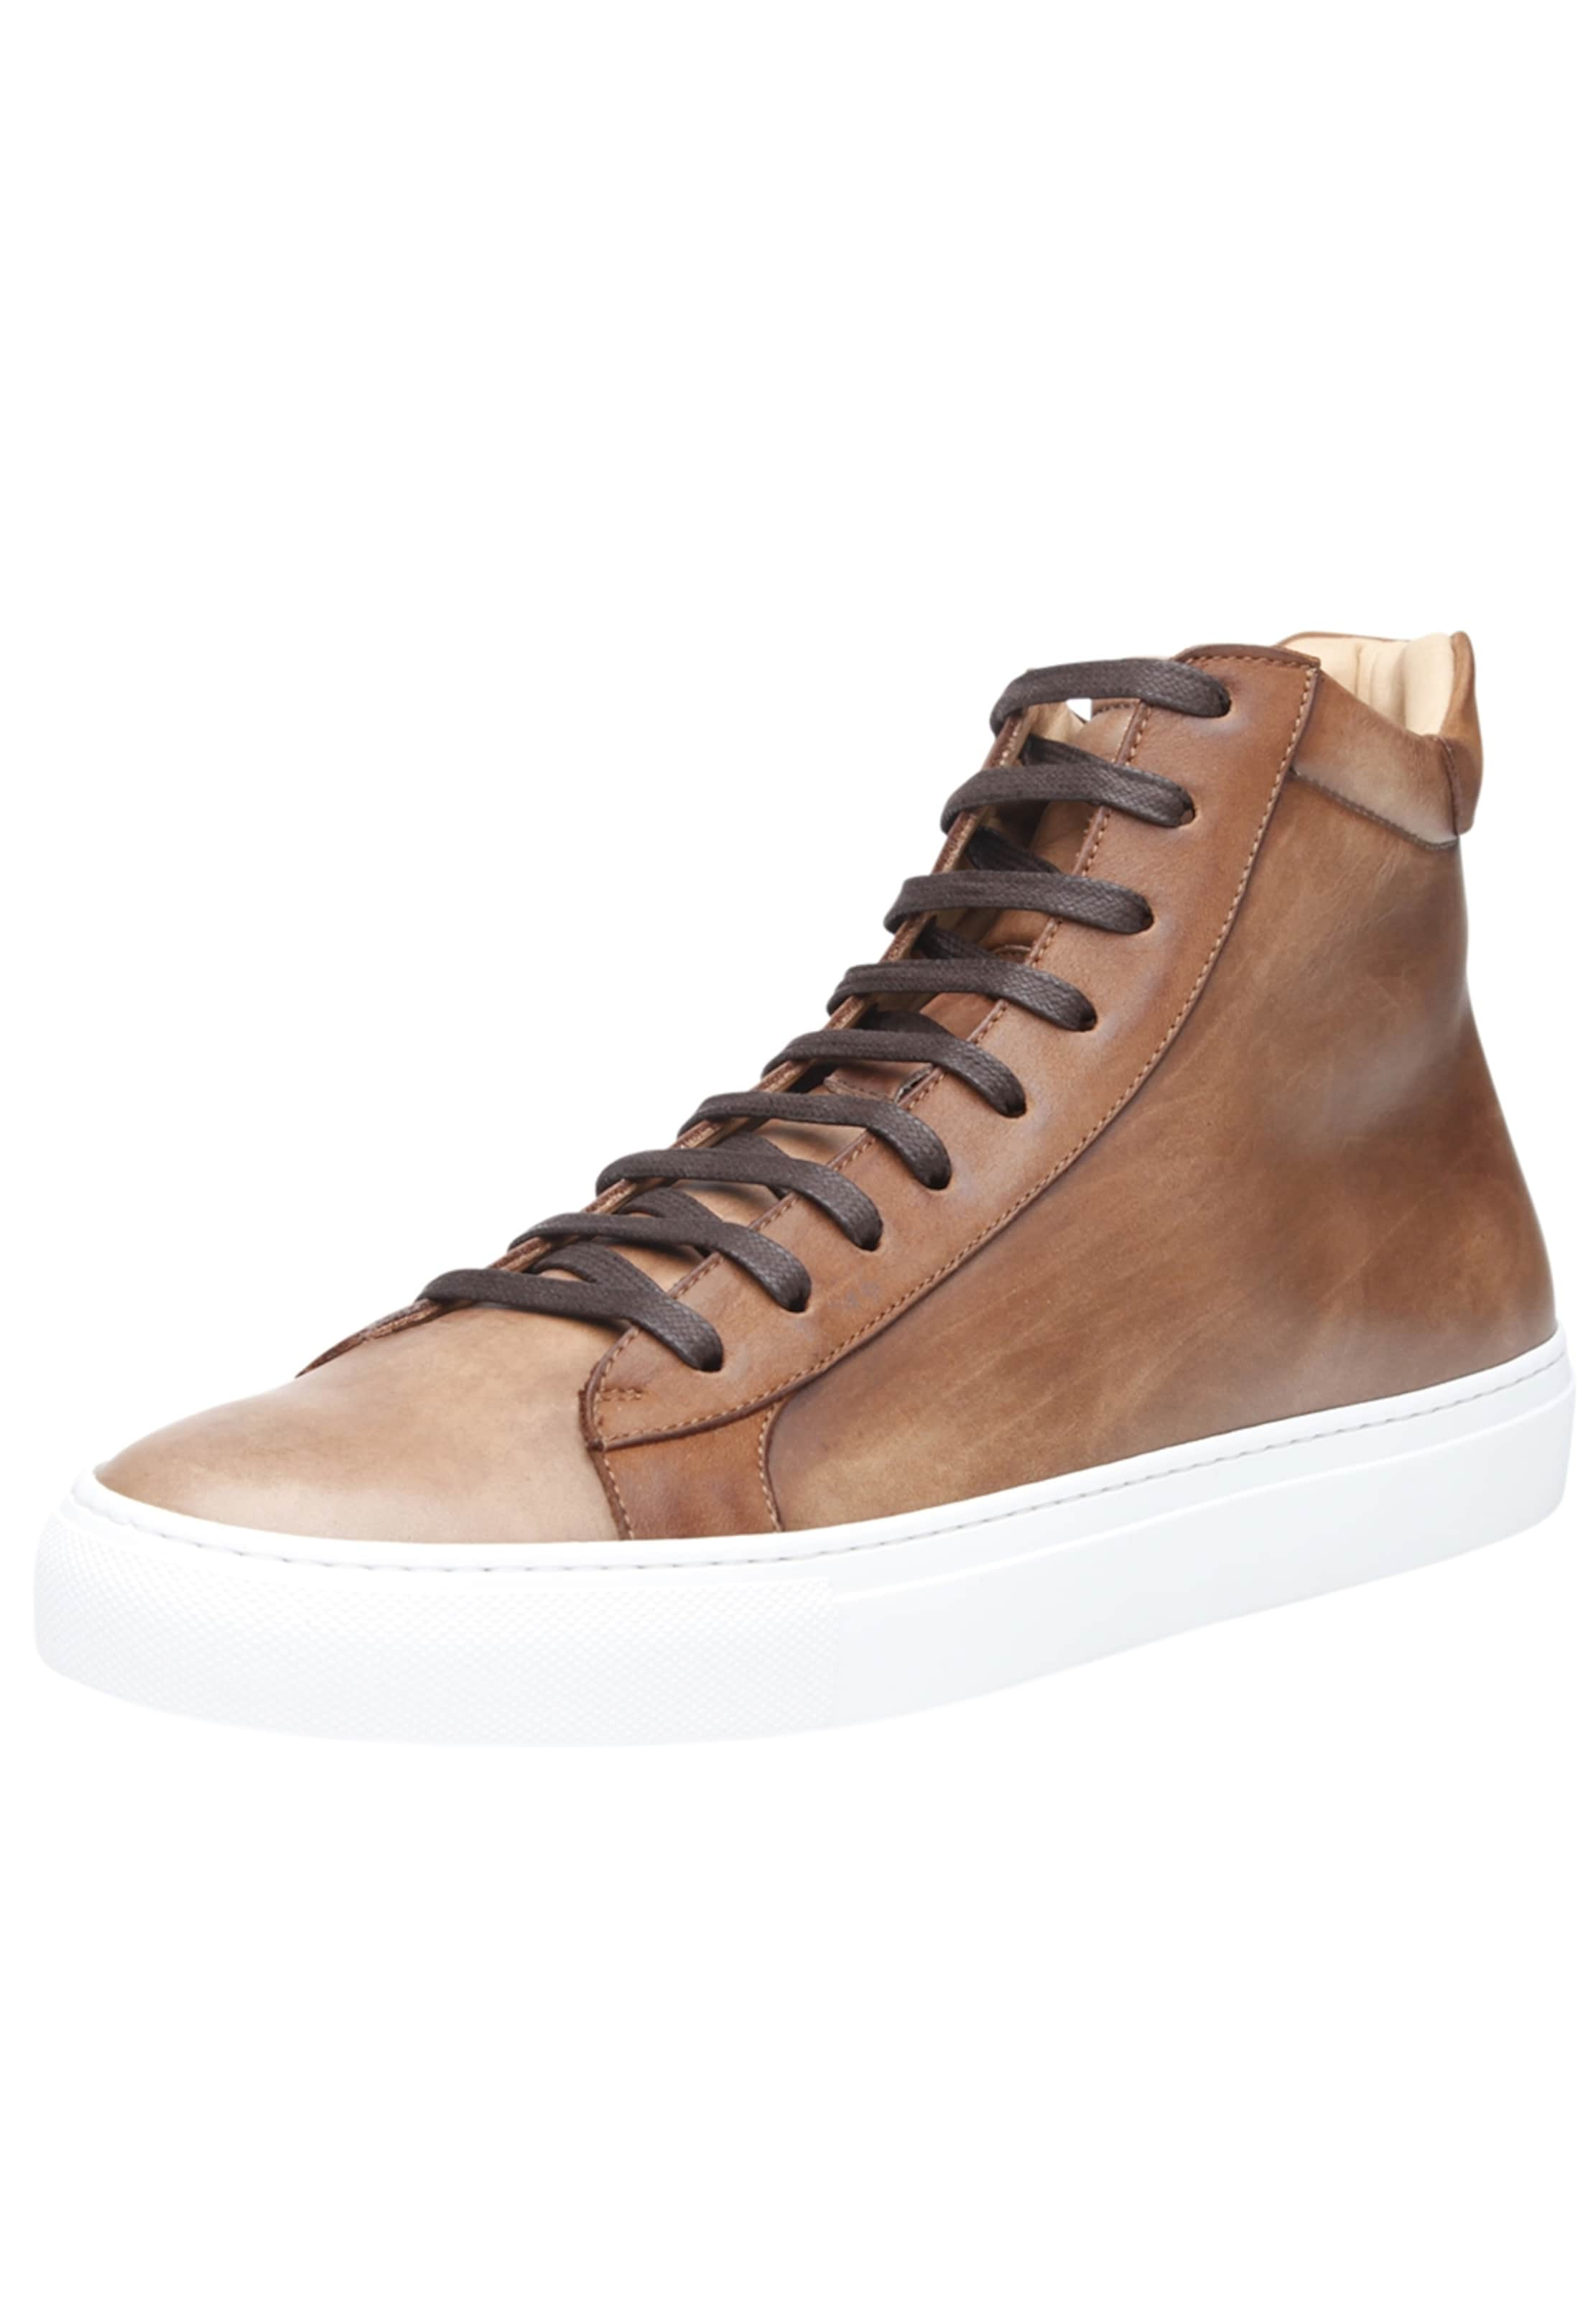 SHOEPASSION Sneaker   No. 54 MS